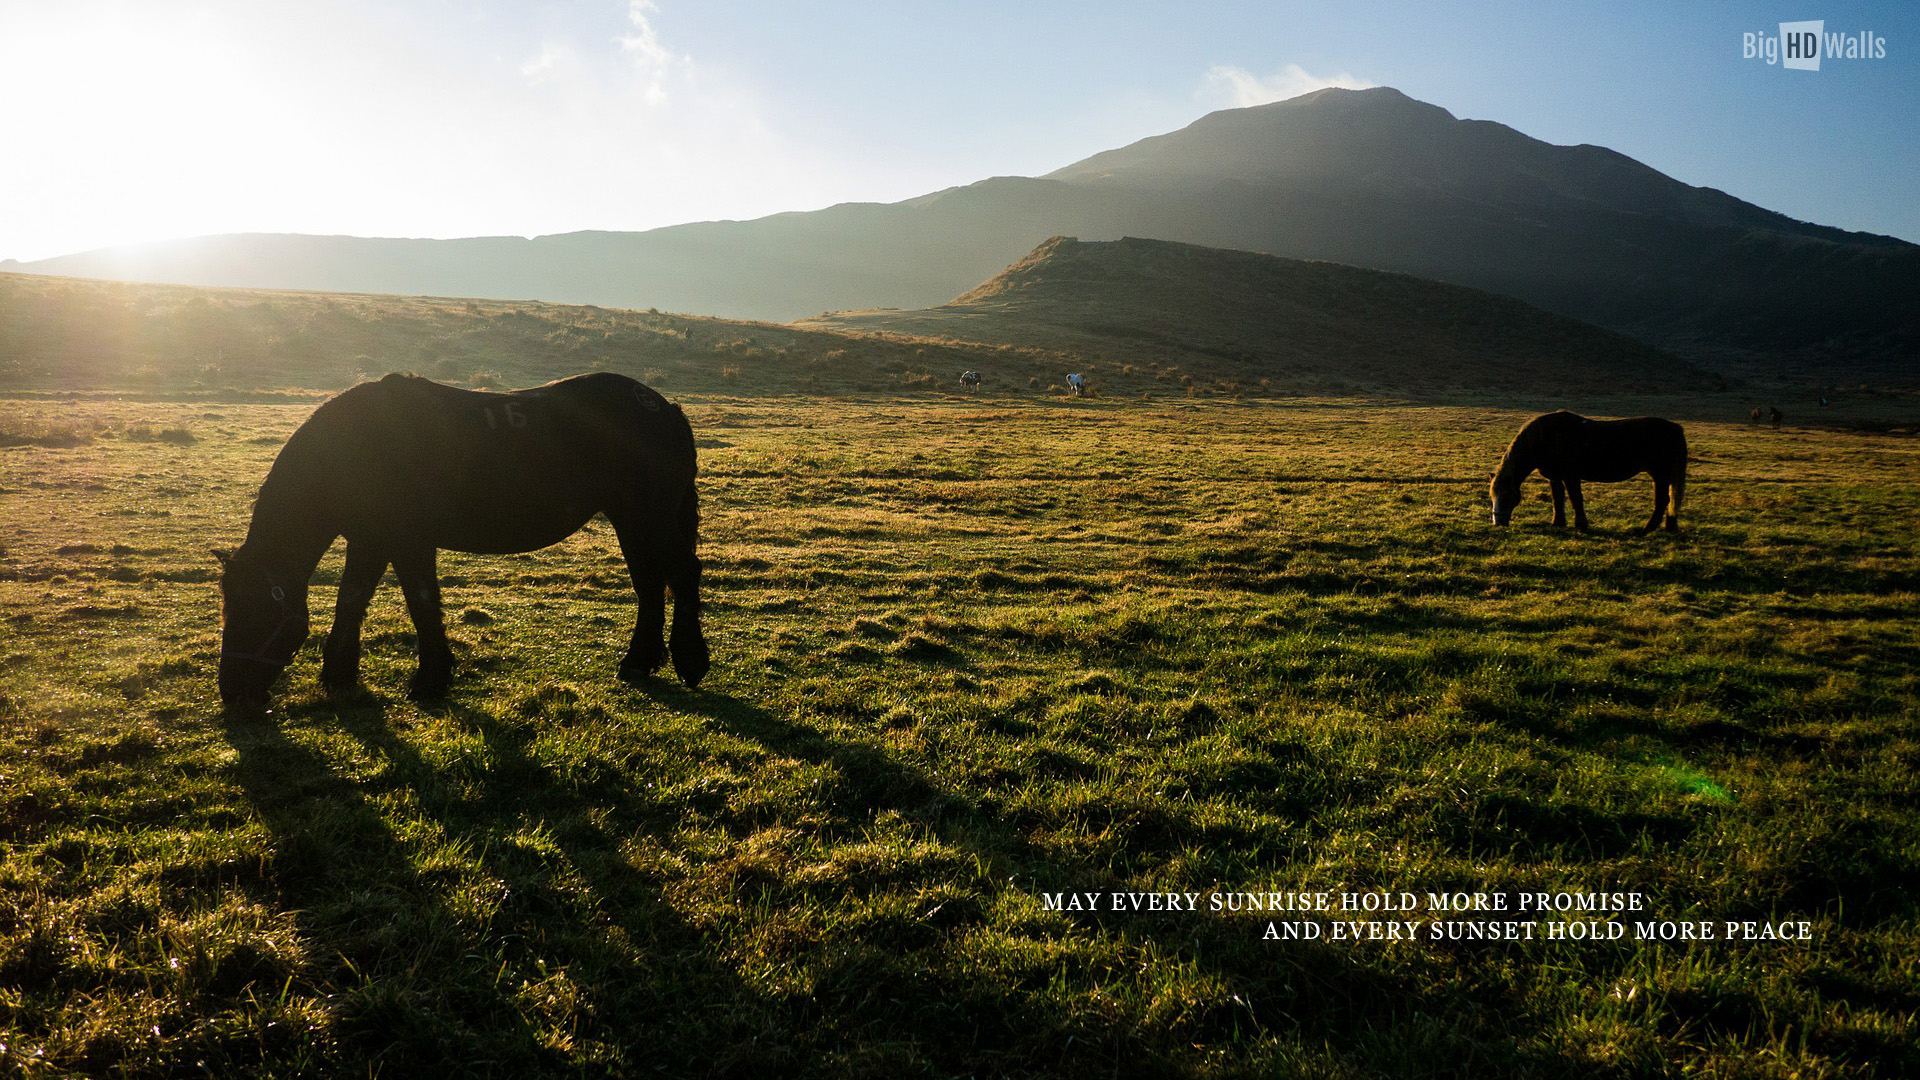 Meadows and horses Wallpaper picture | BigHDWalls